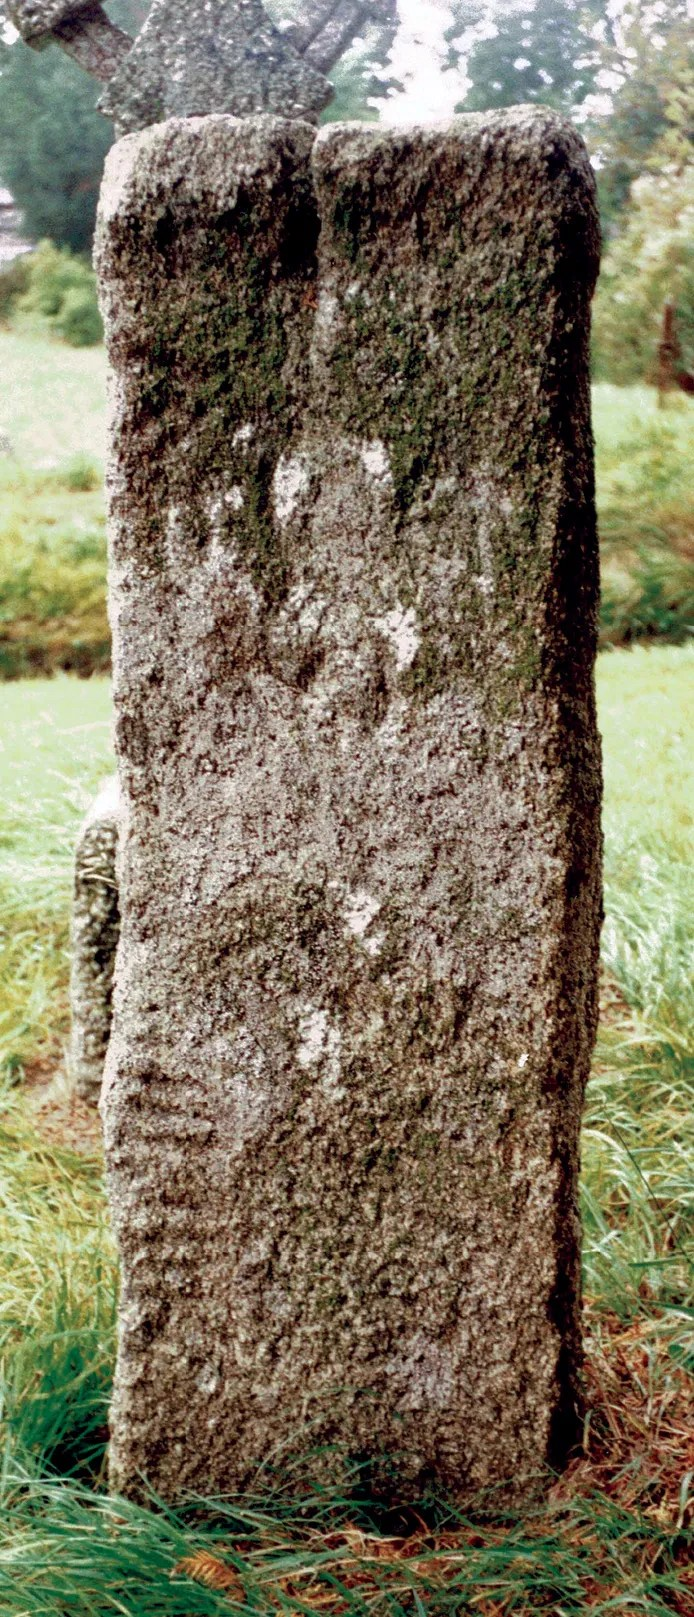 BELOW Lewannick (originally Lanwenuc, the church-site of St Wenuc, or Guenoc), in Cornwall, has two early 6th-century inscribed stones, one thought to commemorate Ingenuus, the other Ulcagnus. The use of ogham implies that both were Irish migrants.